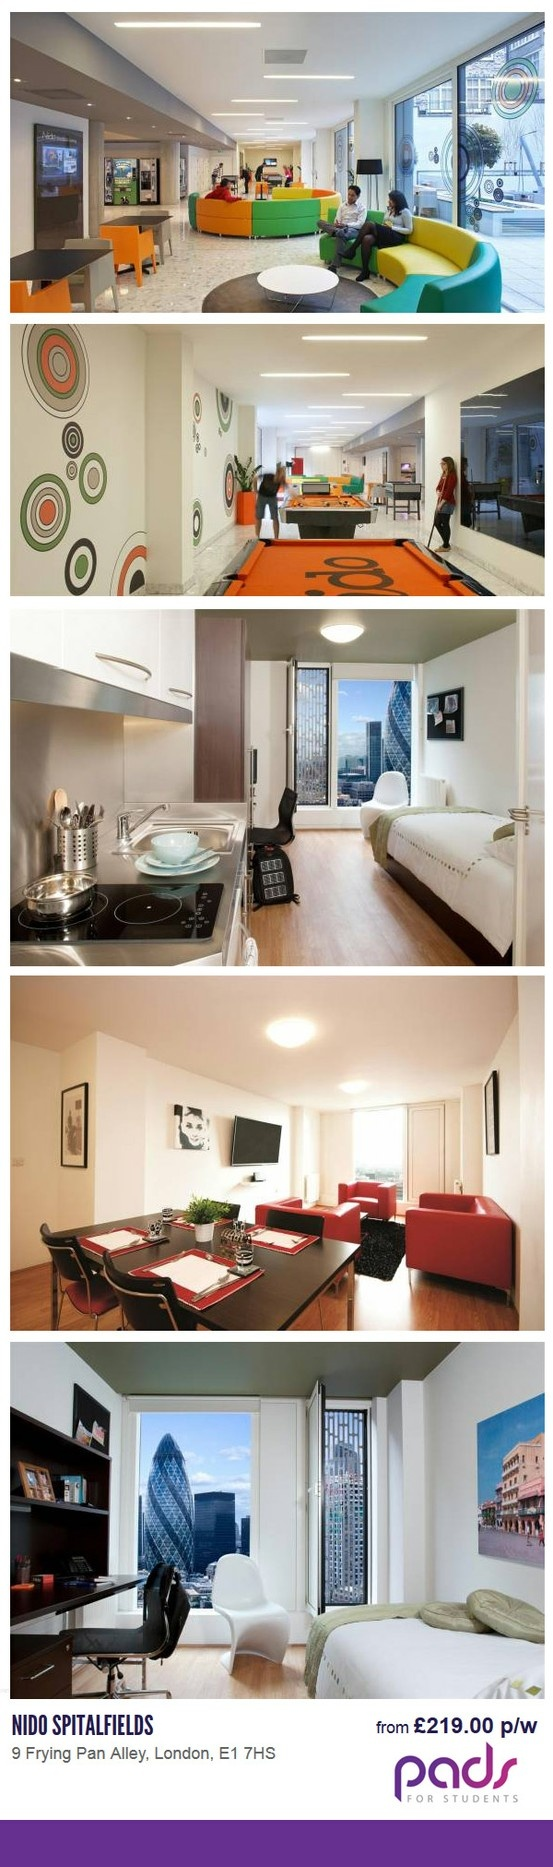 Nido Spitalfields amazing student residence, located in fashionable and trendy Spitalfields @ Pads for Students #London #student #londonFlats